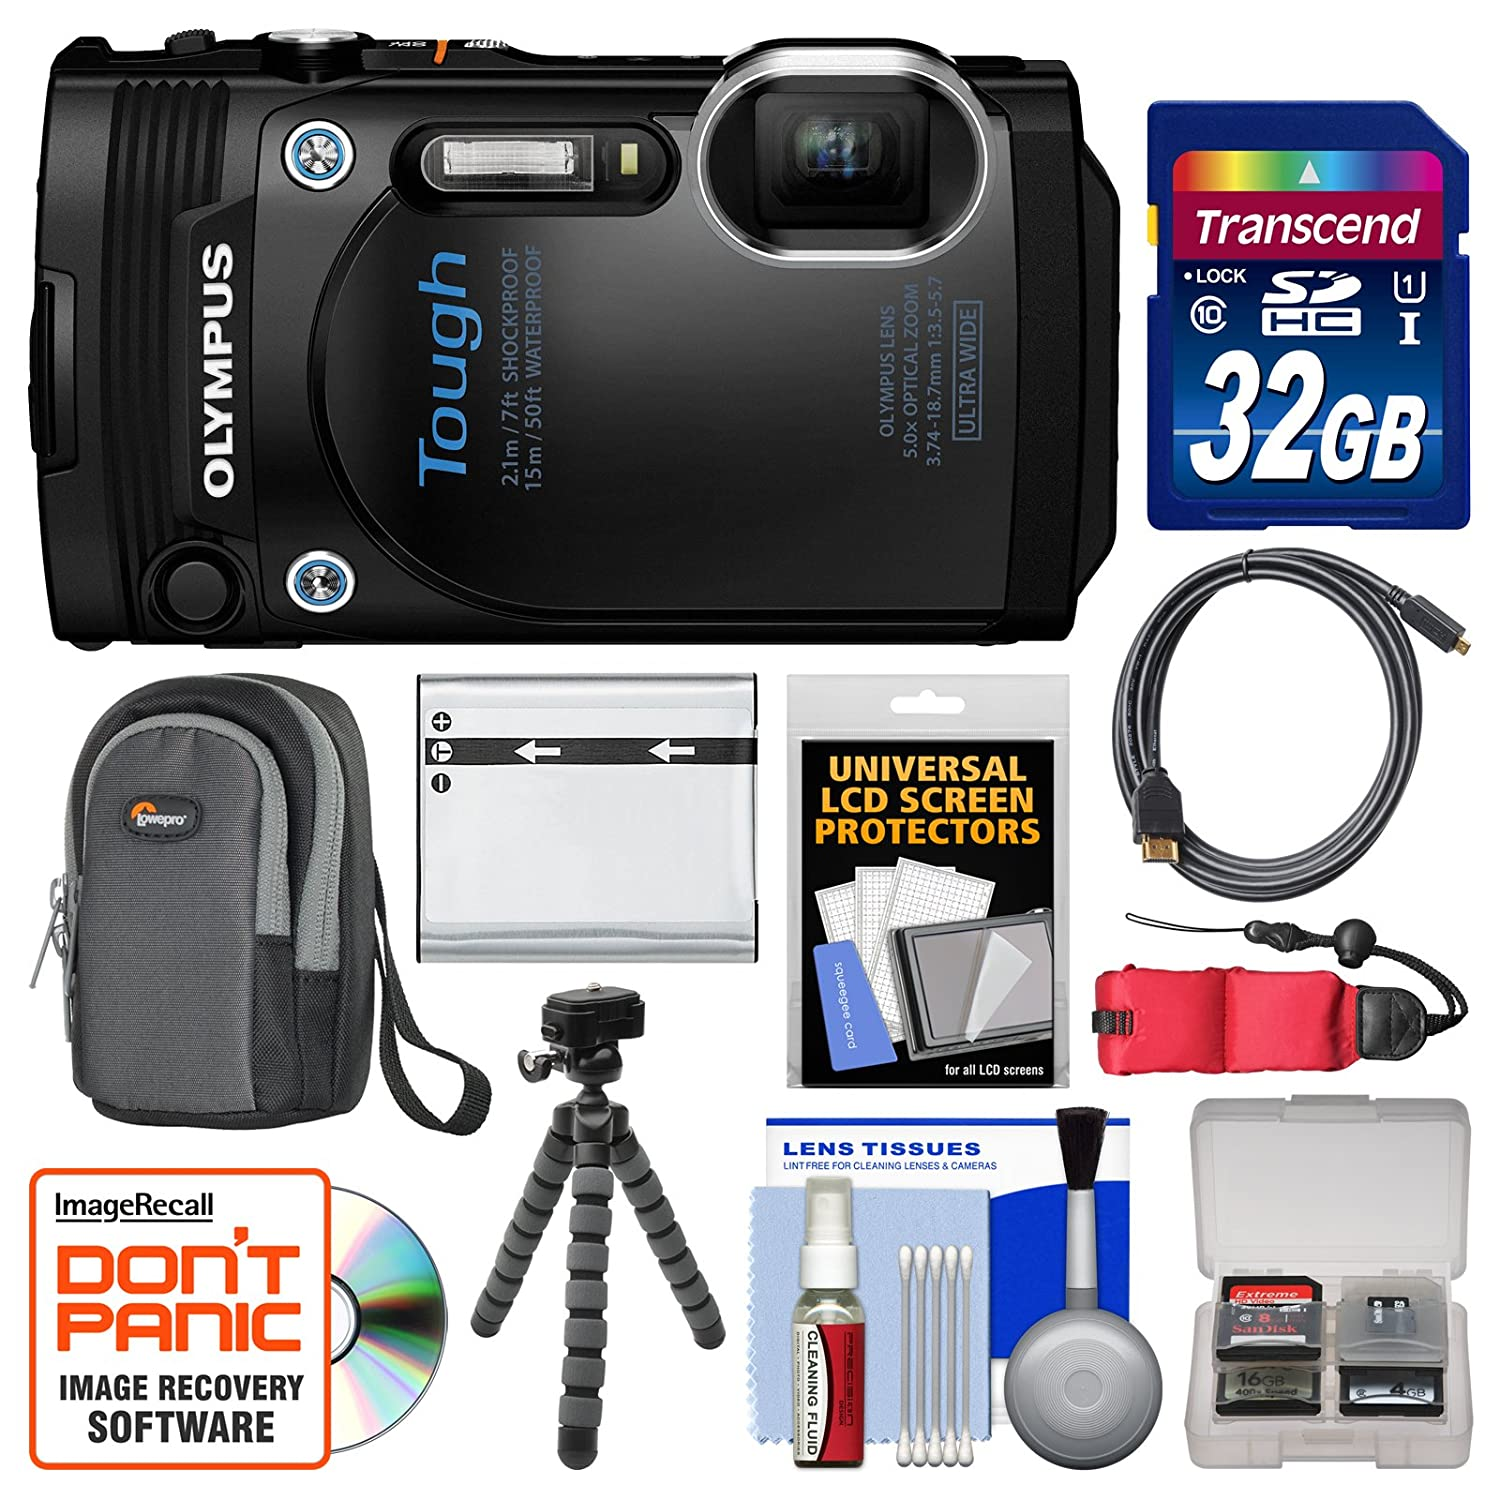 Olympus Tough TG-860 iHS Wi-Fi GPS Shock & Waterproof Digital Camera (Black) with 32GB Card + Case + Battery + Flex Tripod + Float Strap + Kit dli90b replacement 3 6v 1270mah battery pack for olympus tough tg 1 ihs white black